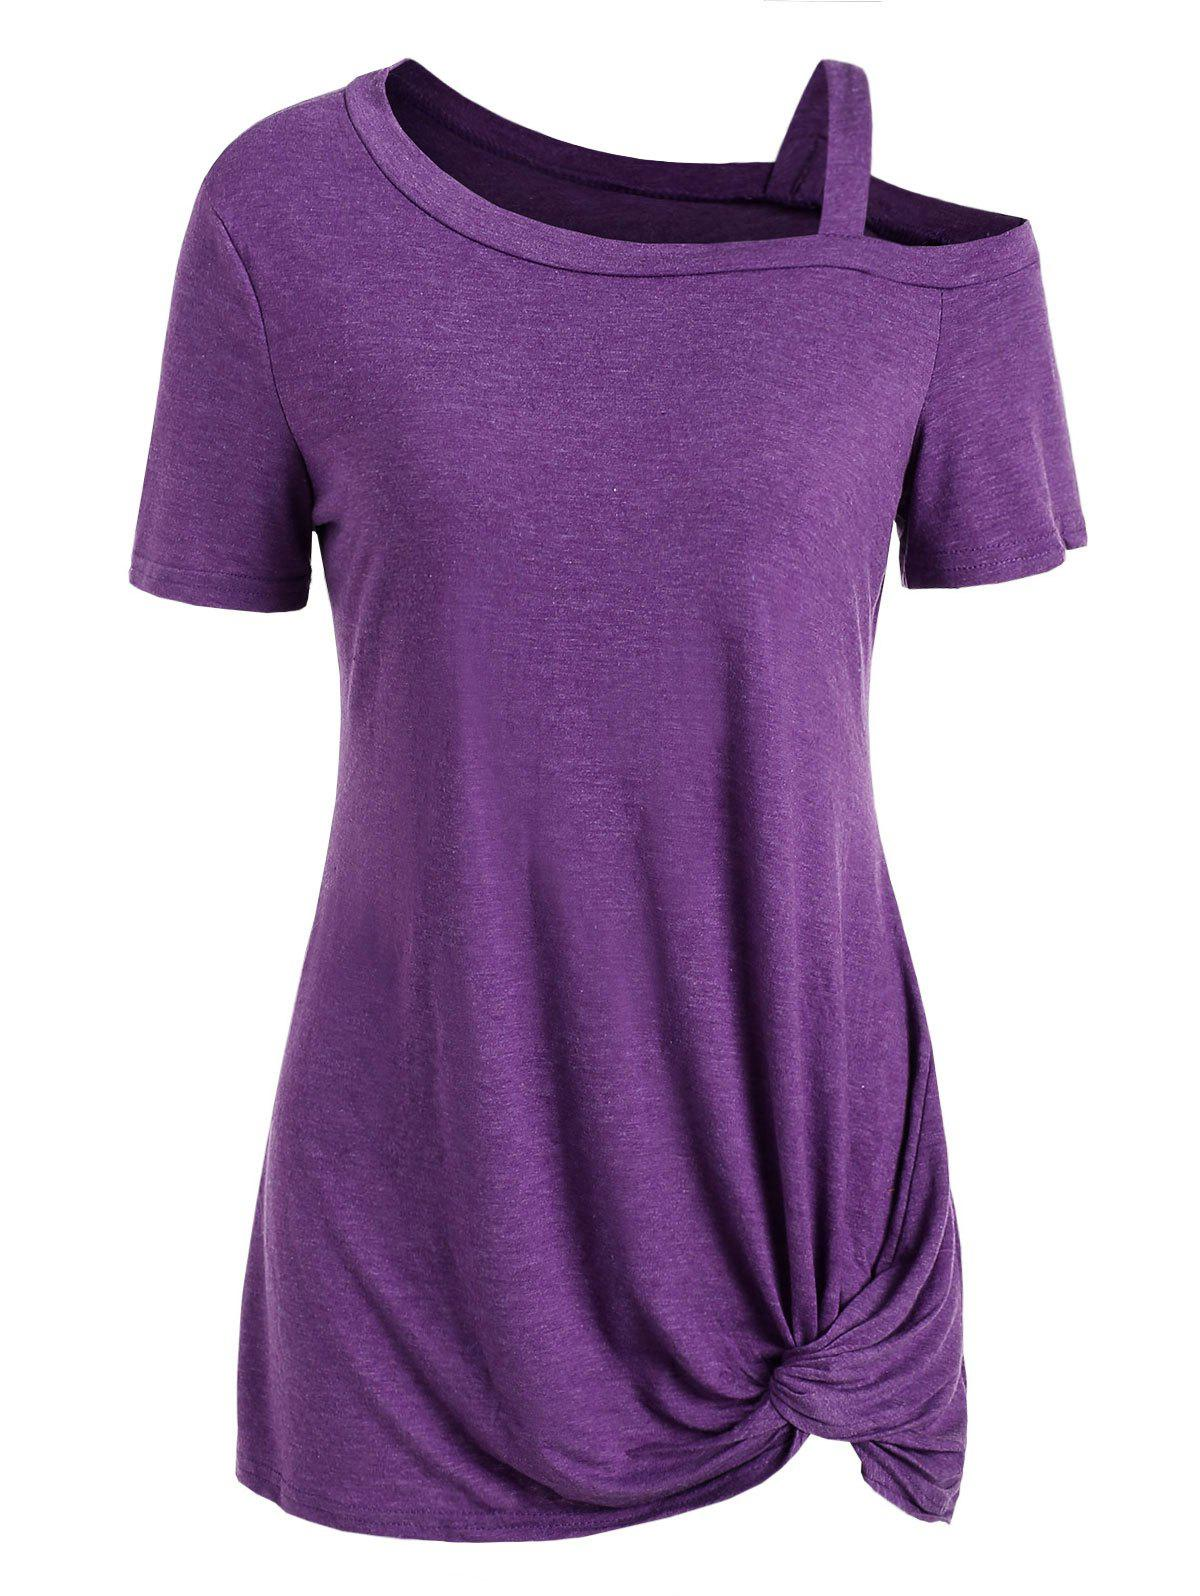 Hot Knotted Skew Neck Short Sleeve Tee